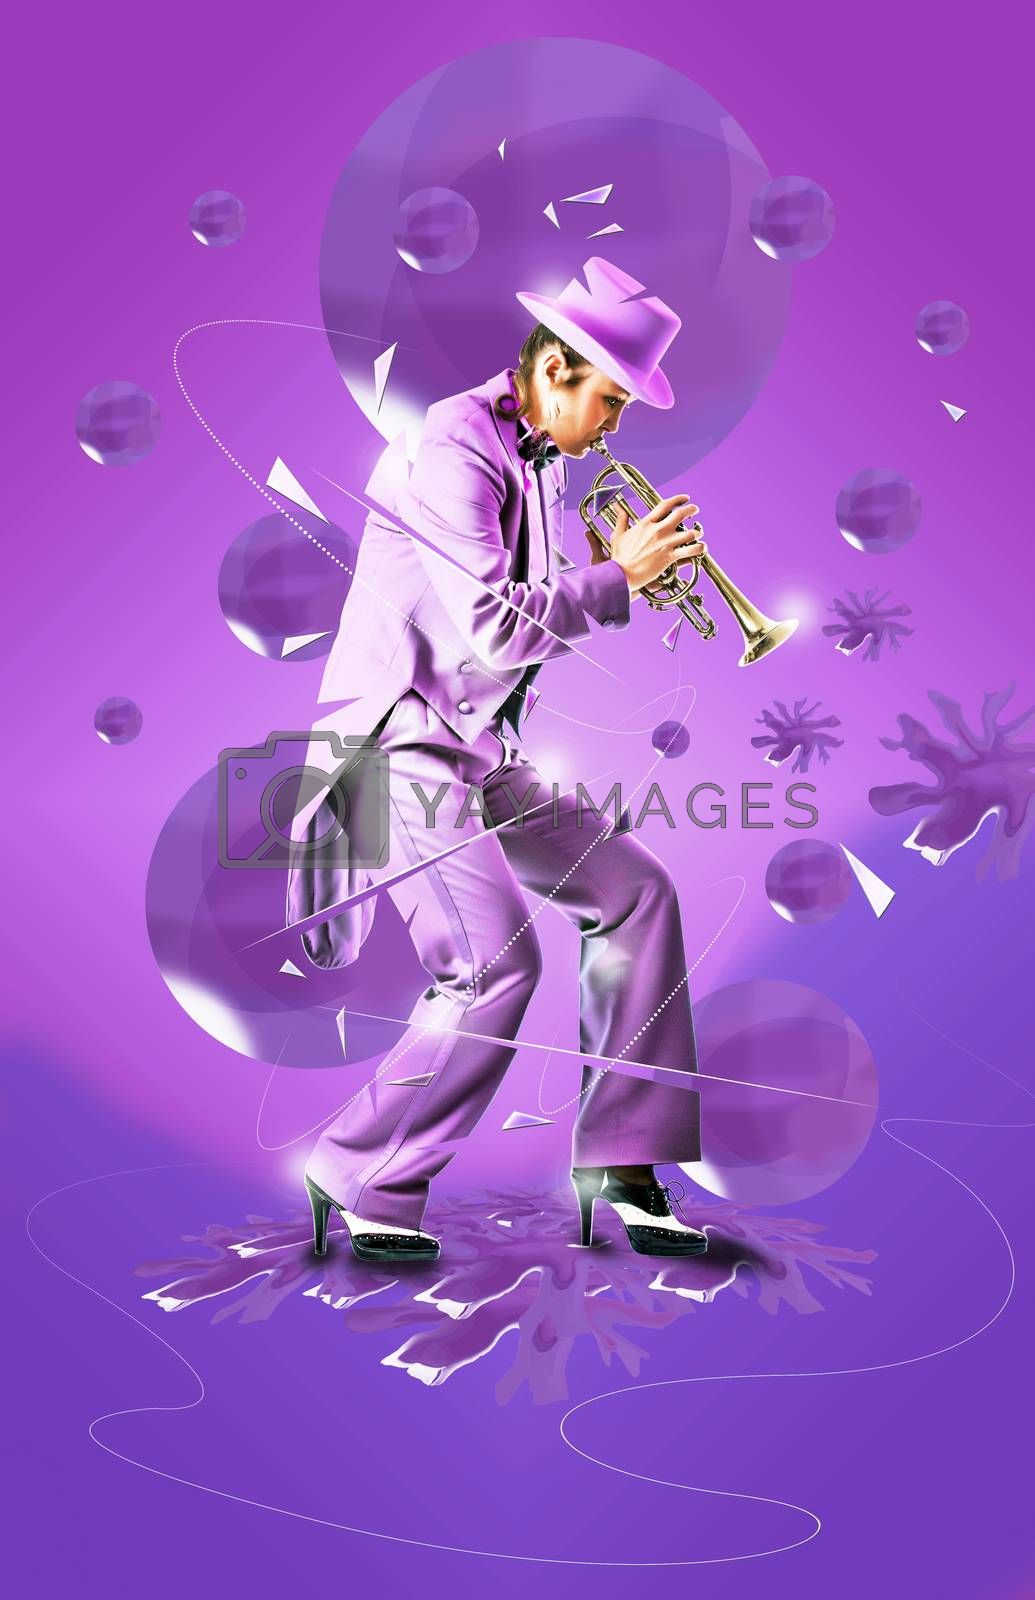 Abstract design of woman in tuxedo playing a trumpet